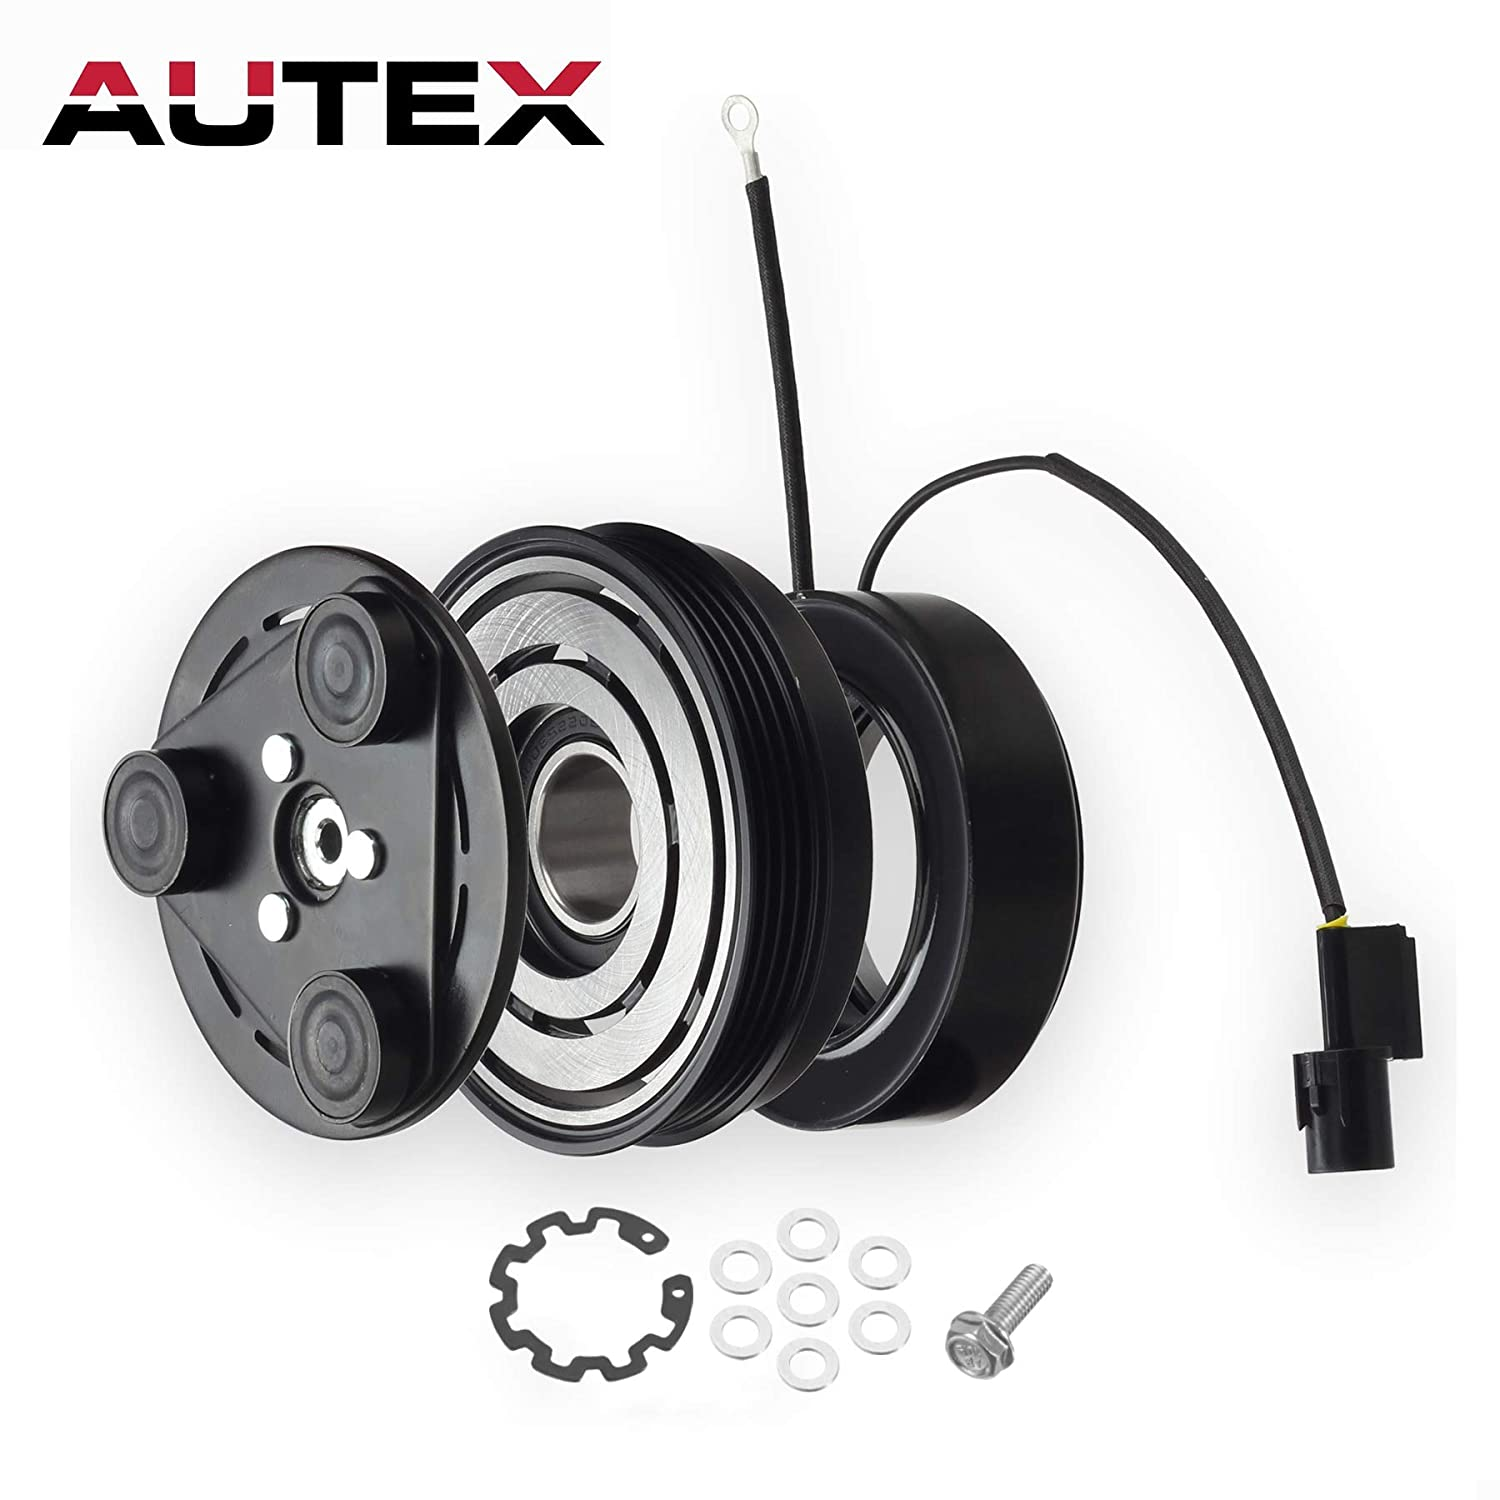 AUTEX AC A/C Compressor Clutch Coil Assembly Kit 977013E200 57190 977013E200RU Replacement for 2003 2004 2005 2006 Kia Sorento 3.5L